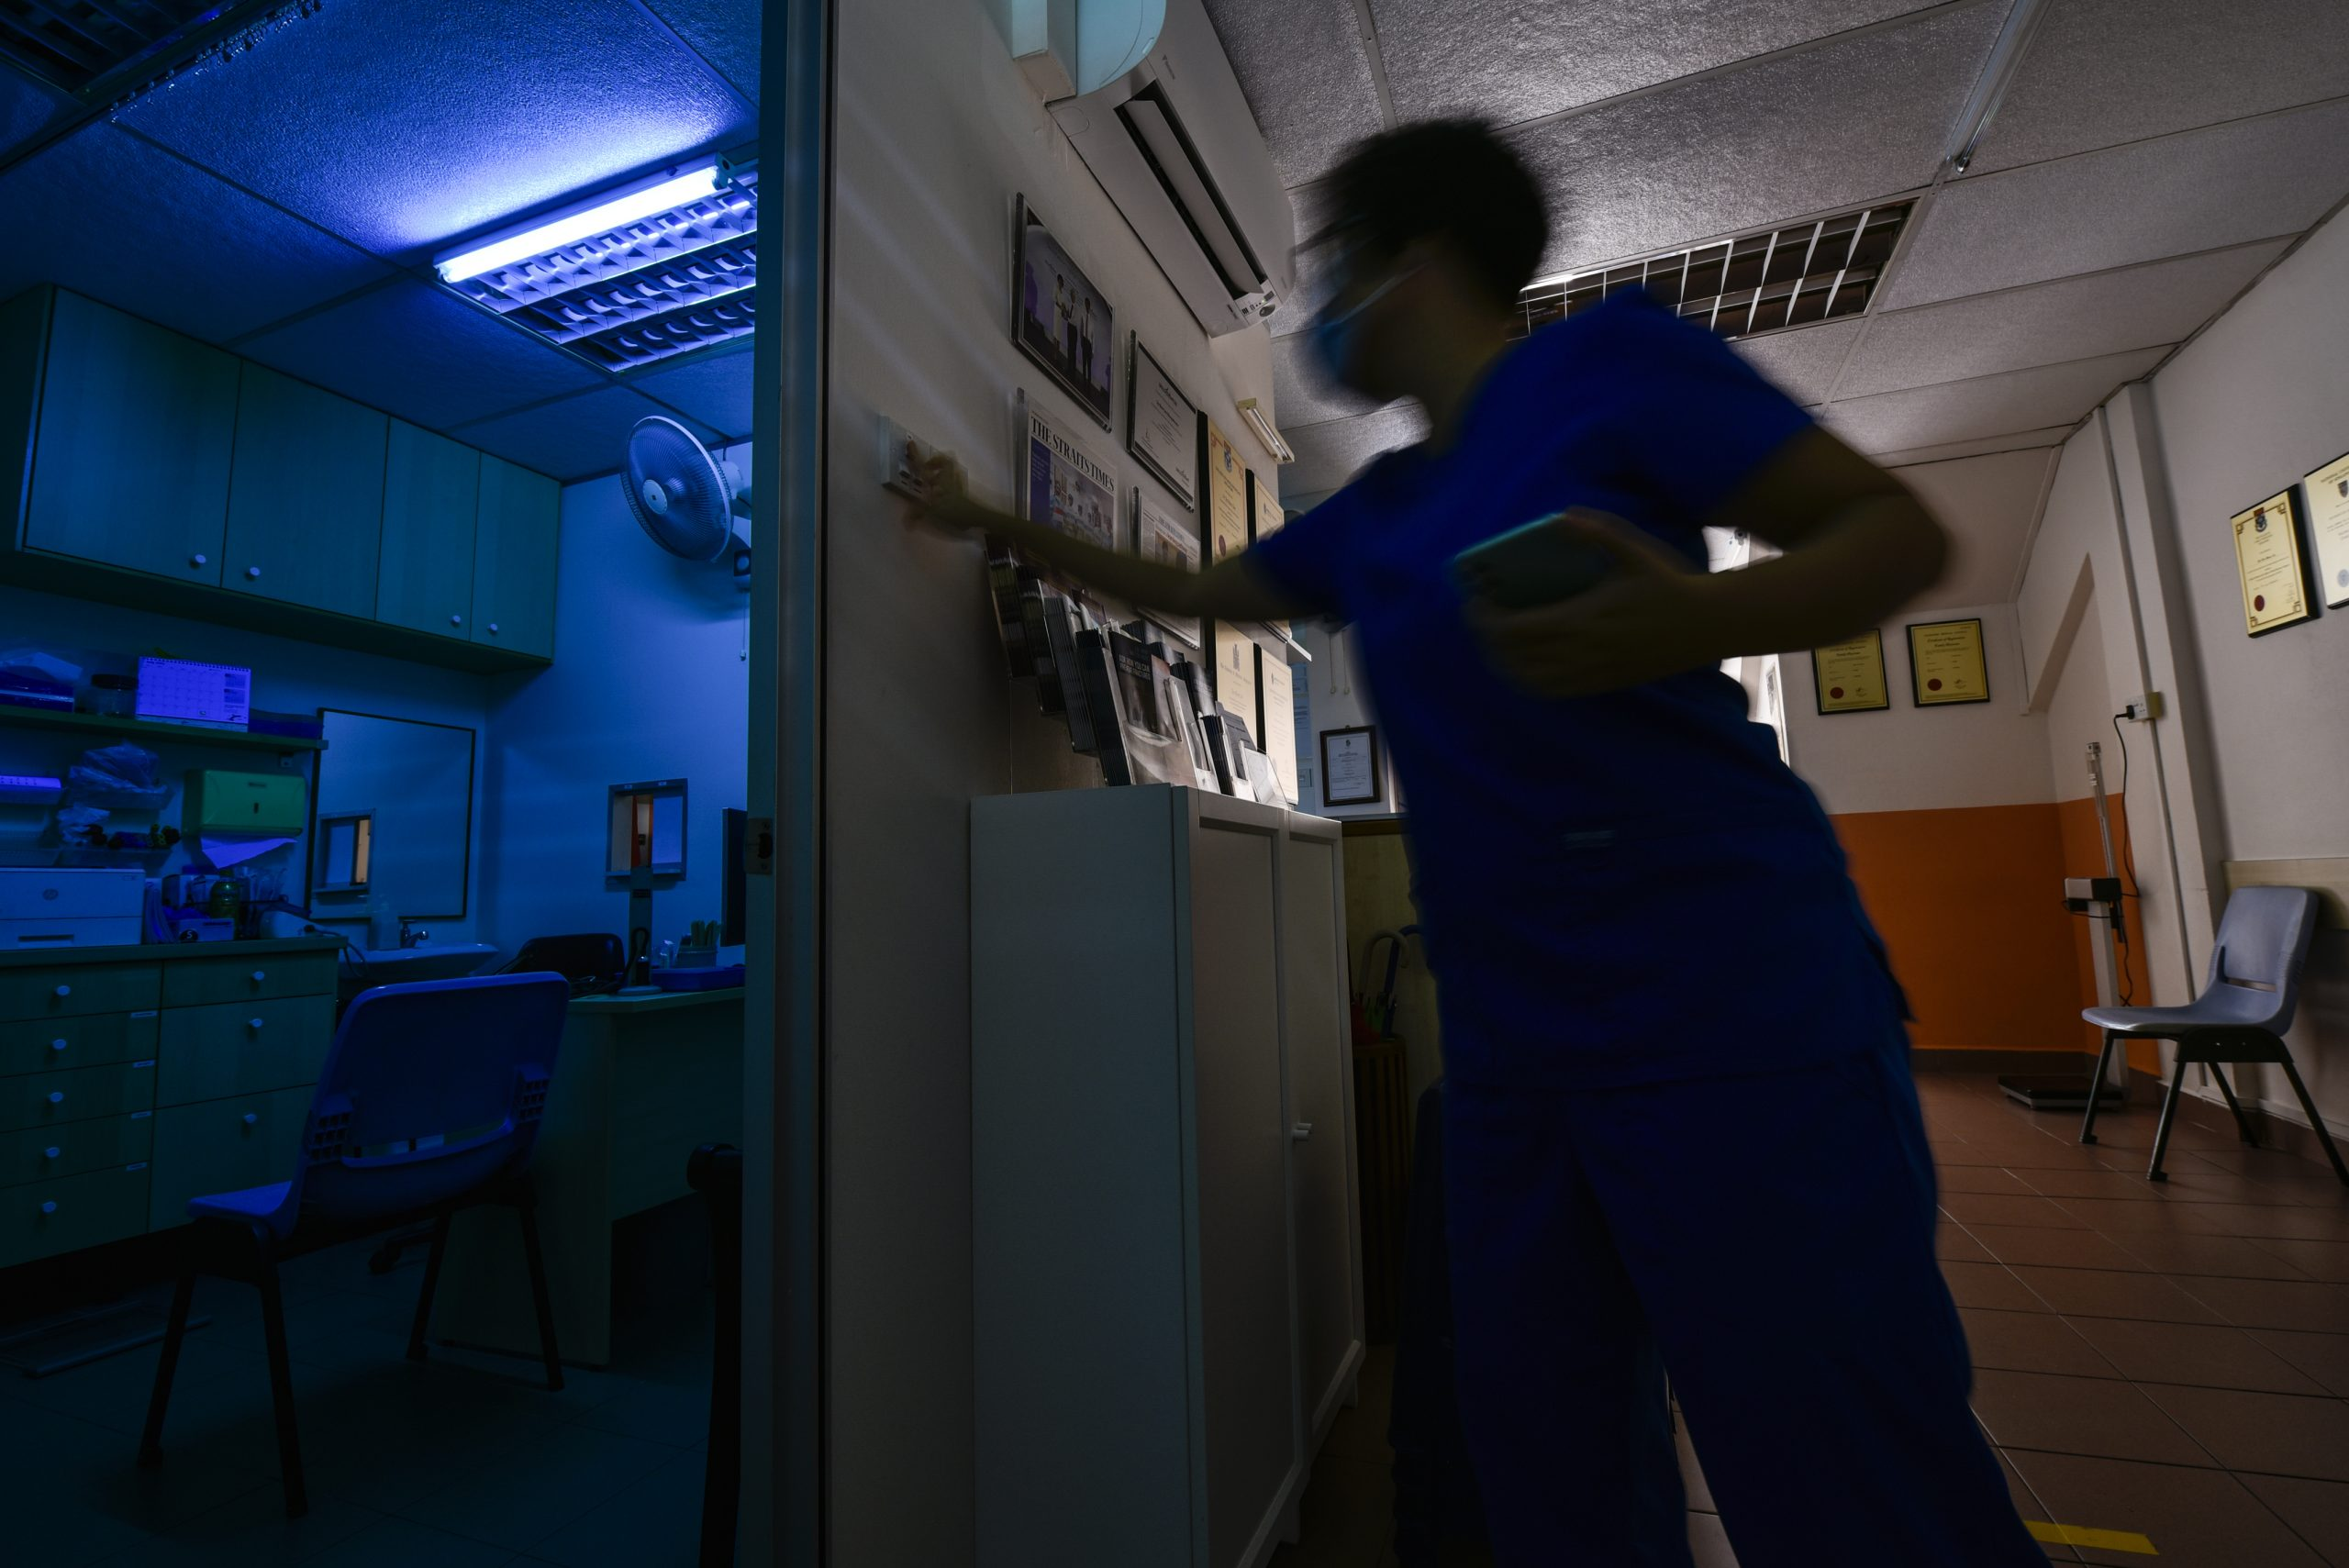 A clinic assistant switches the UVC germicidal lamps on at the end of the day. When the clinic closes, all clinic surfaces are given a thorough wipe-down before these blue lights are turned on. These lamps were strategically placed opposite air-conditioning units so that the circulated air would pass through the blue light for disinfection.